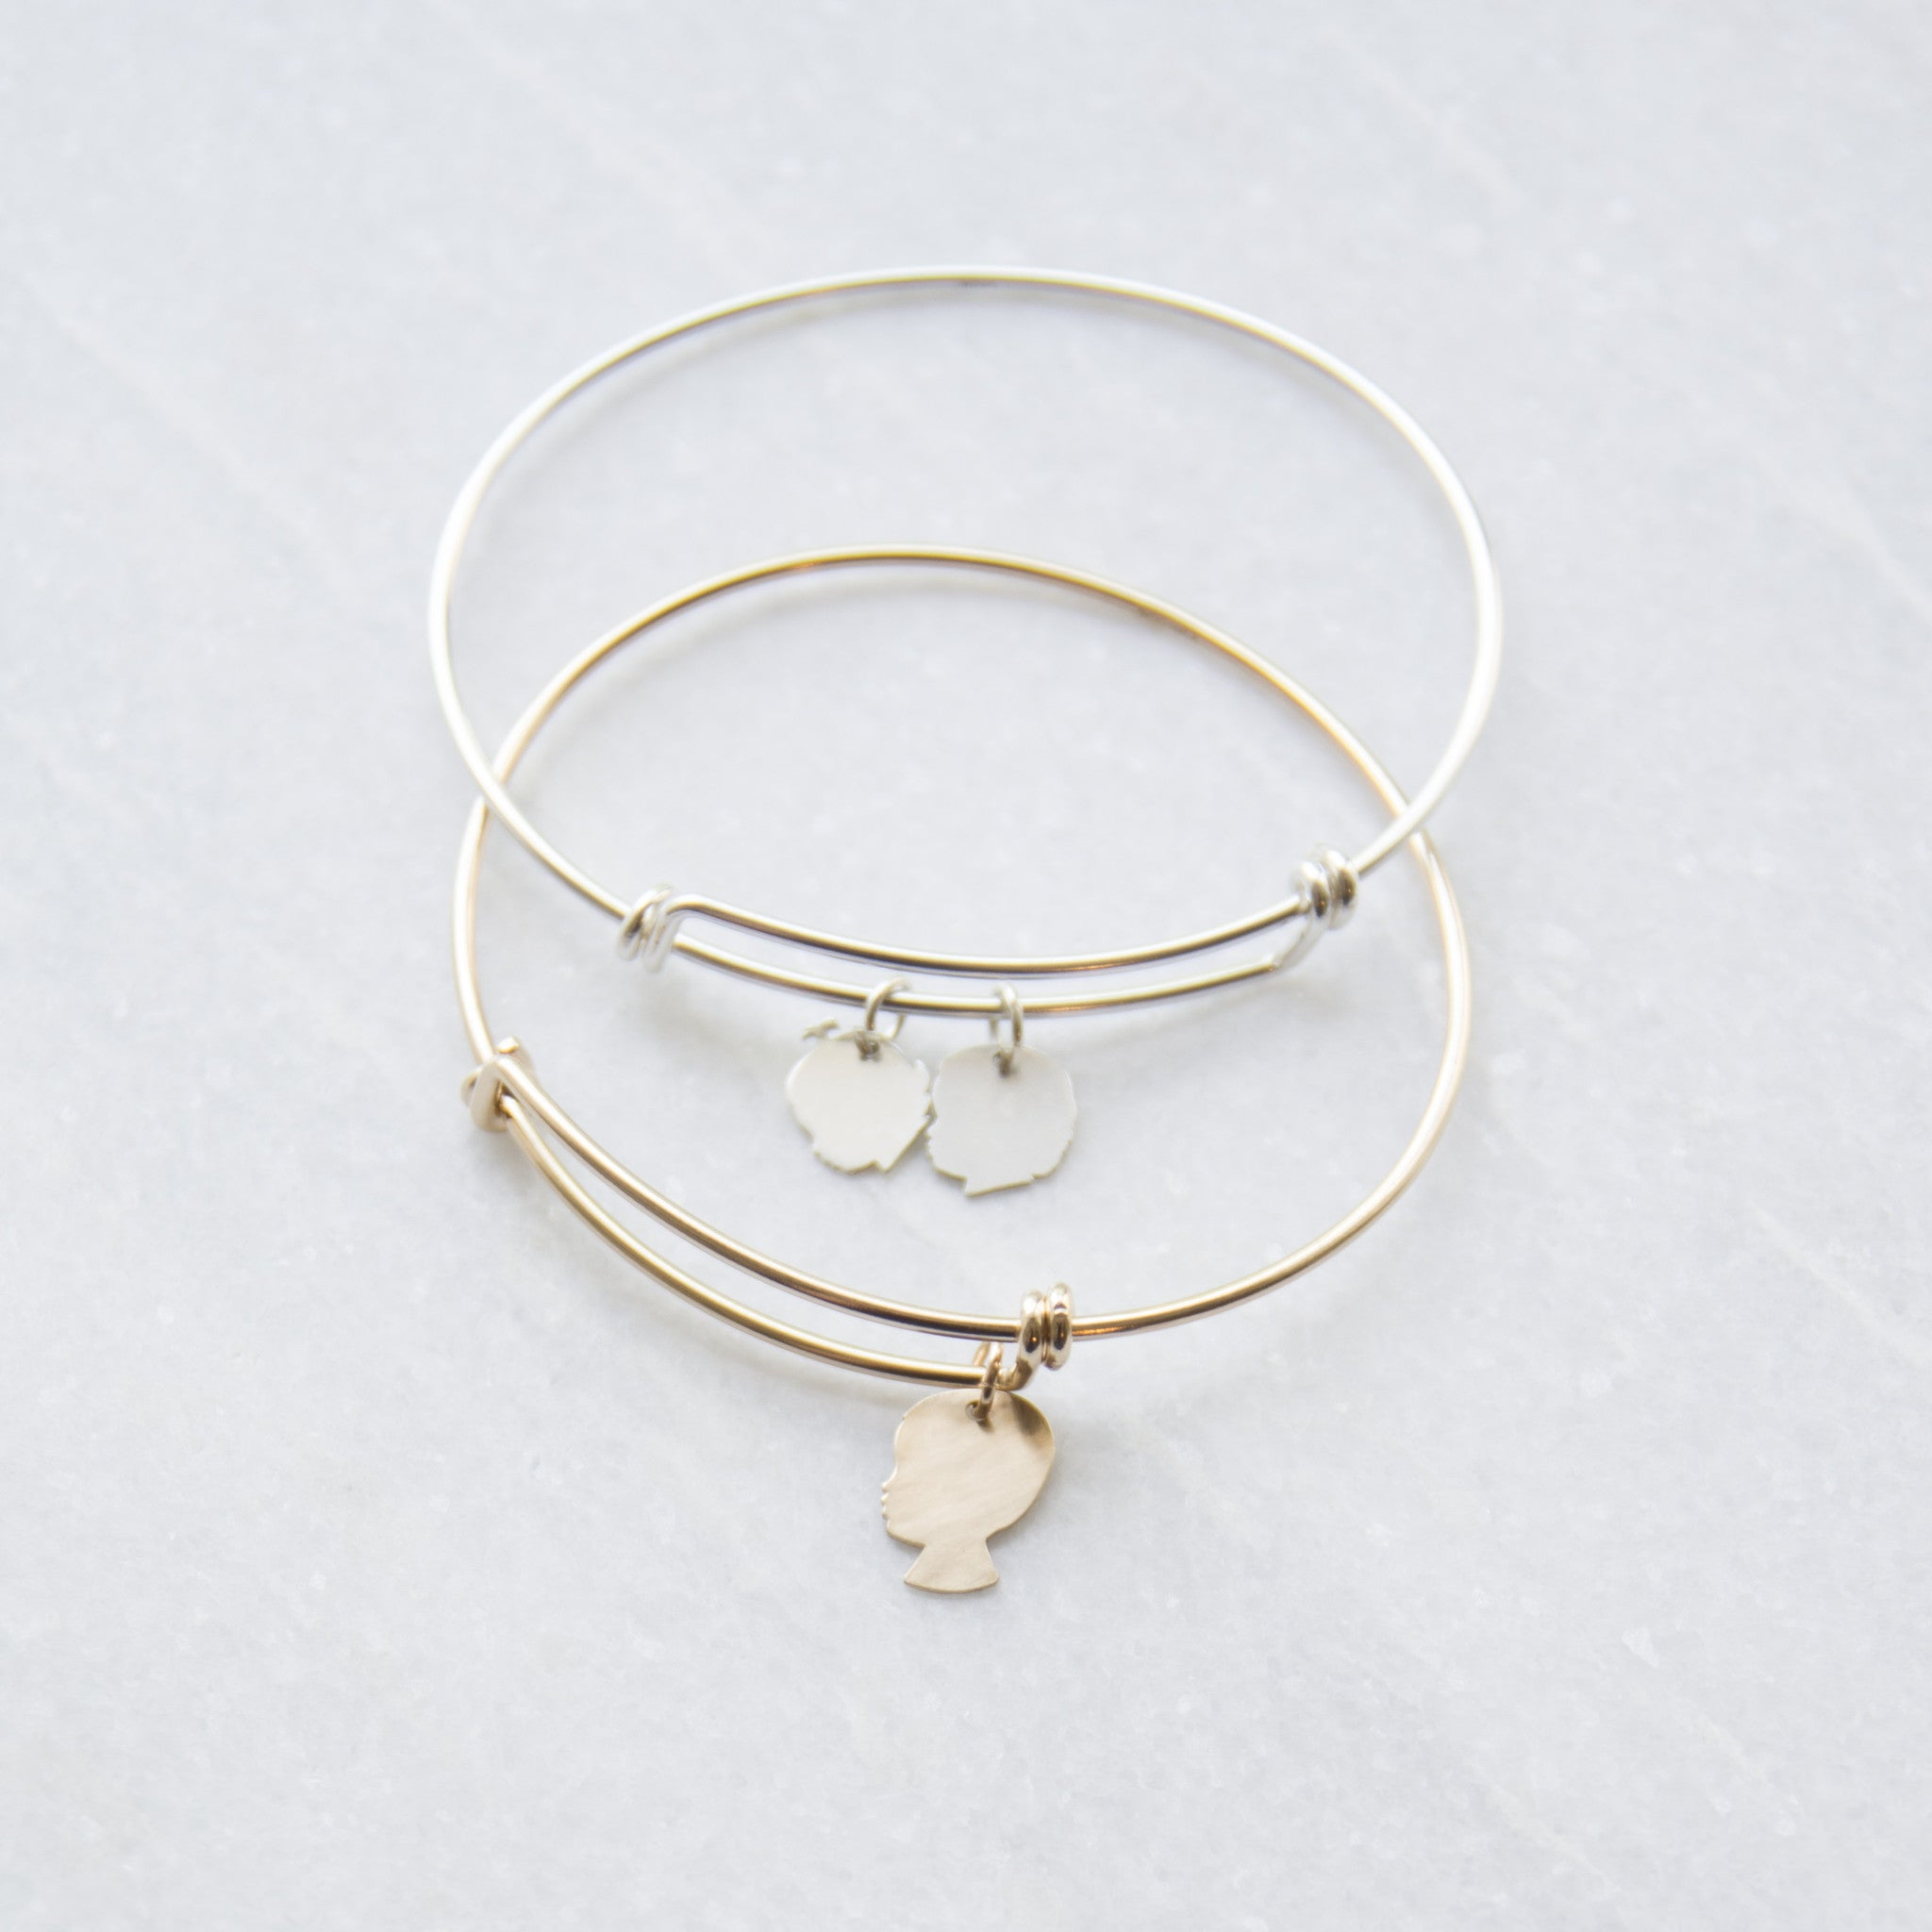 triple and bangles steel alex wholesale online adjusted store on bangle product bracelets with stainless loop adjustable ani wire expandable bracelet piece simple